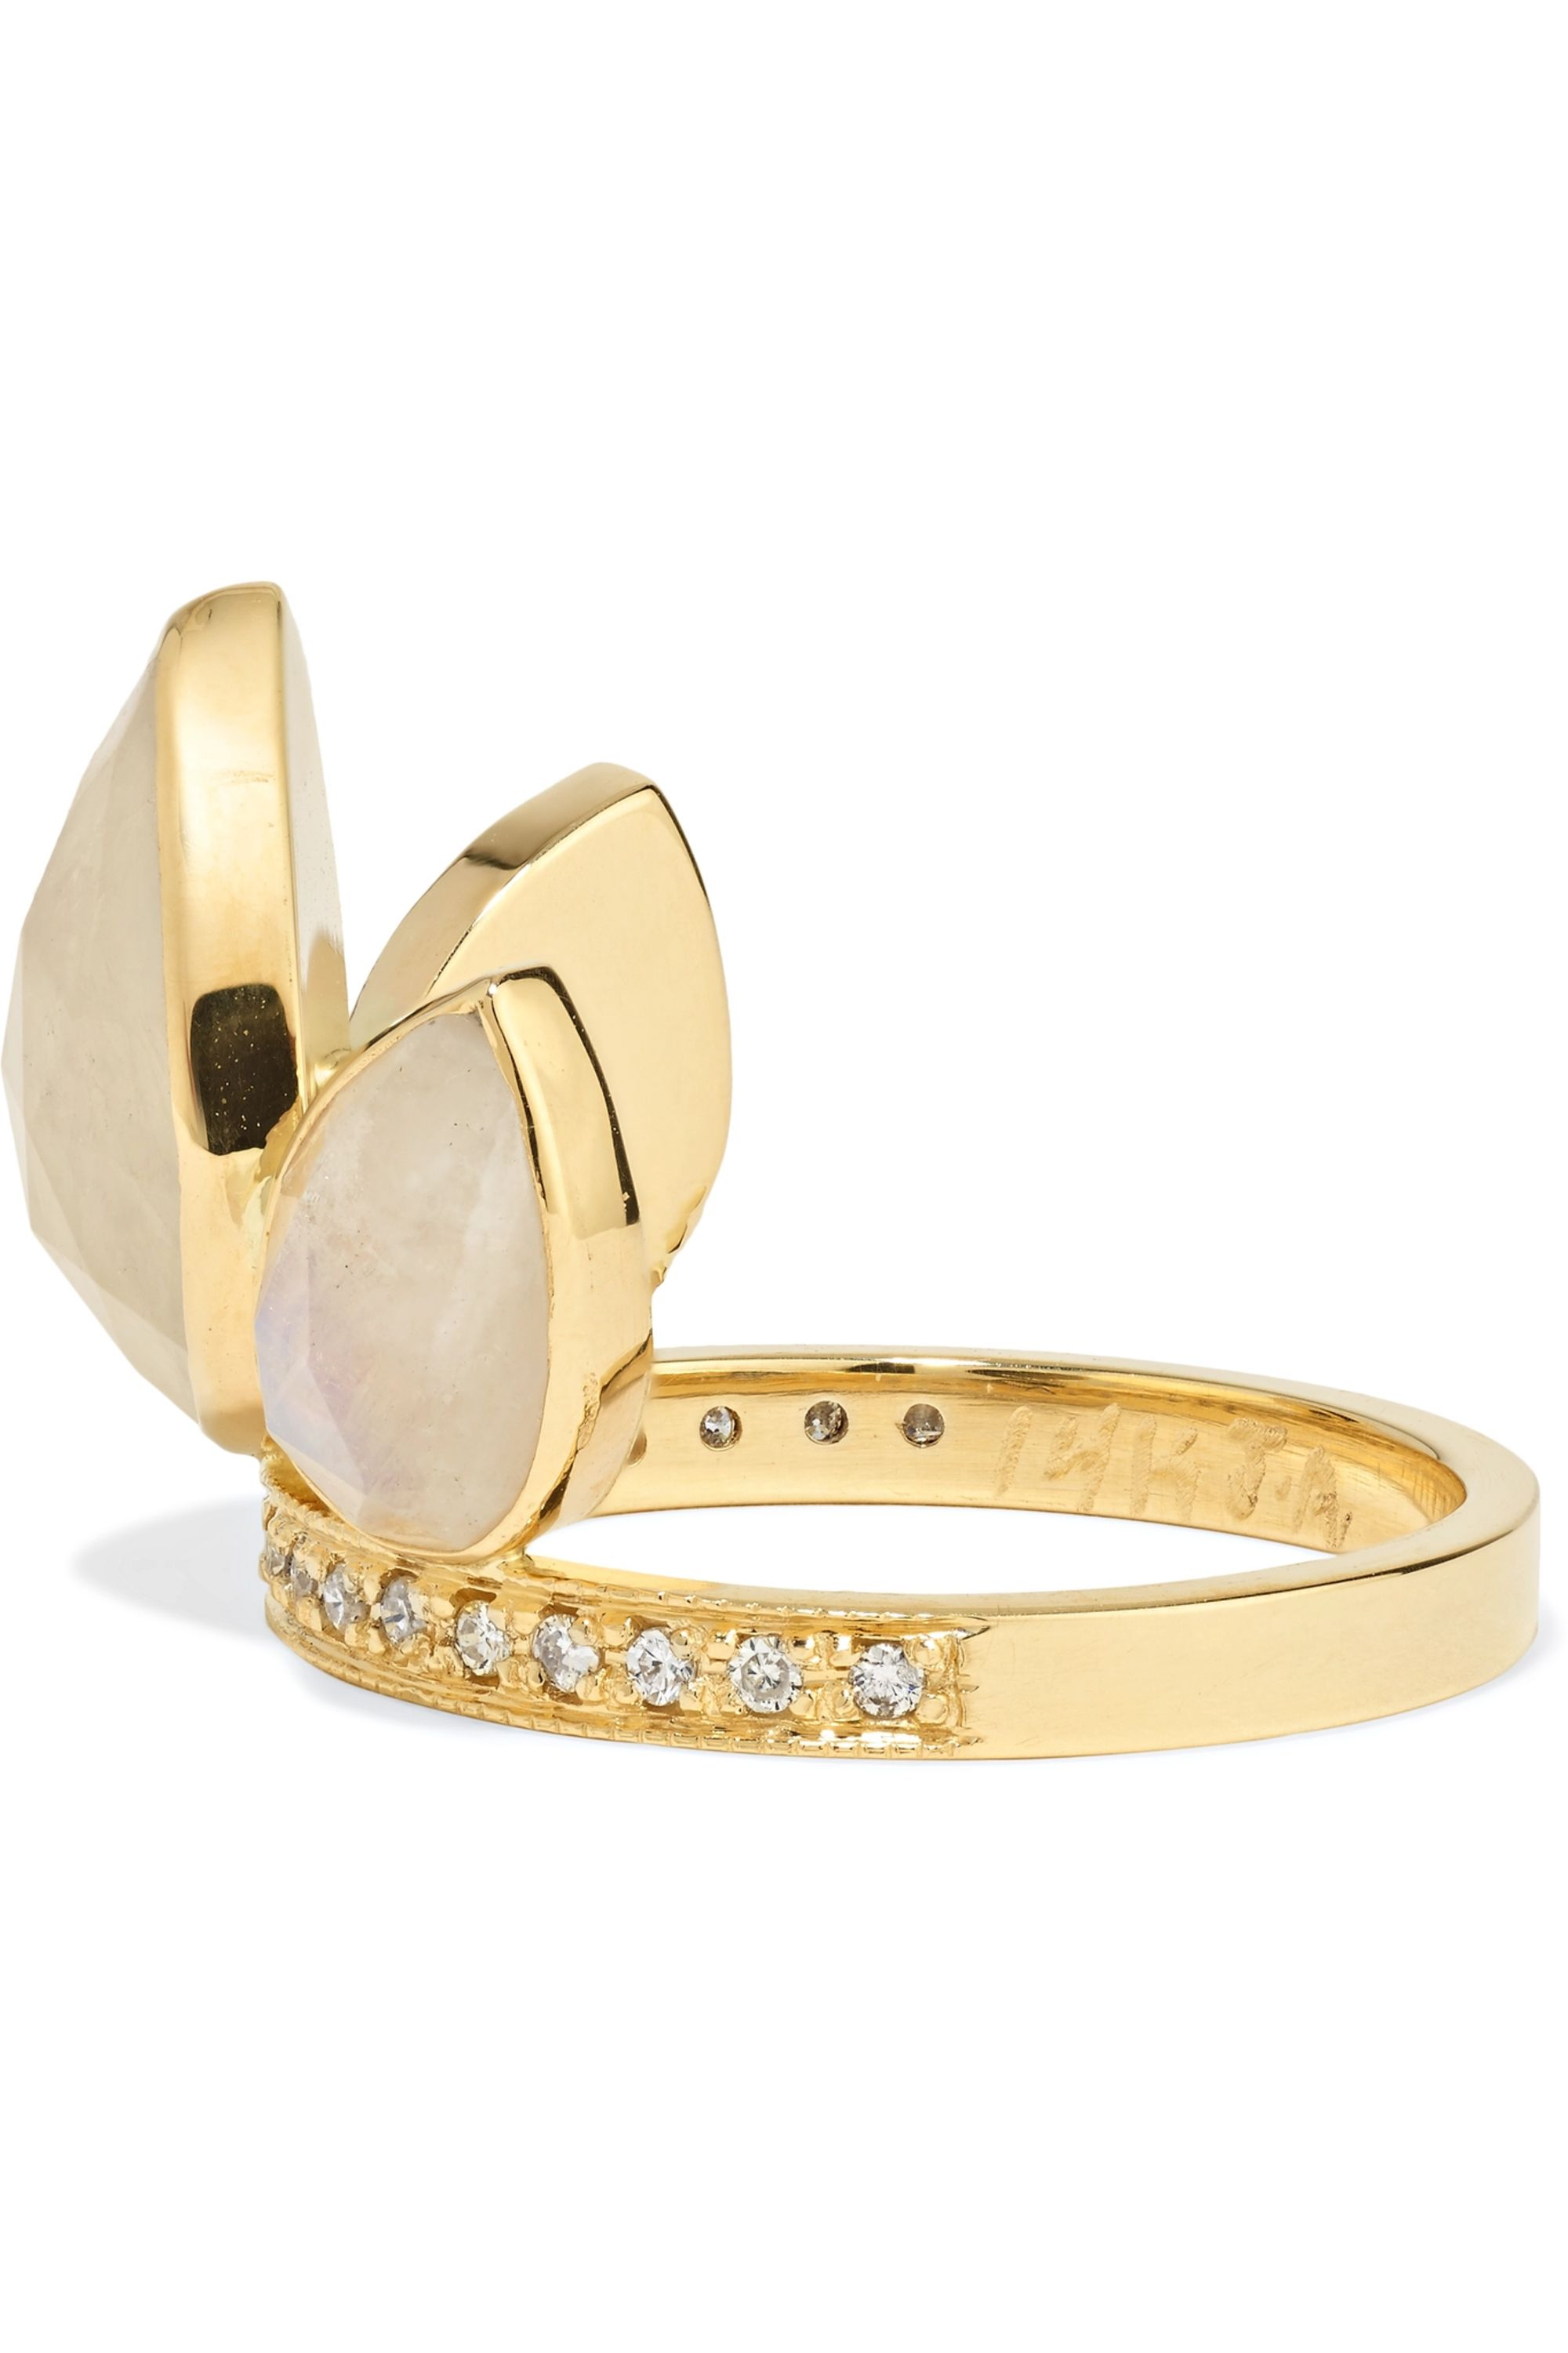 Jacquie Aiche 14-karat gold, moonstone and diamond ring